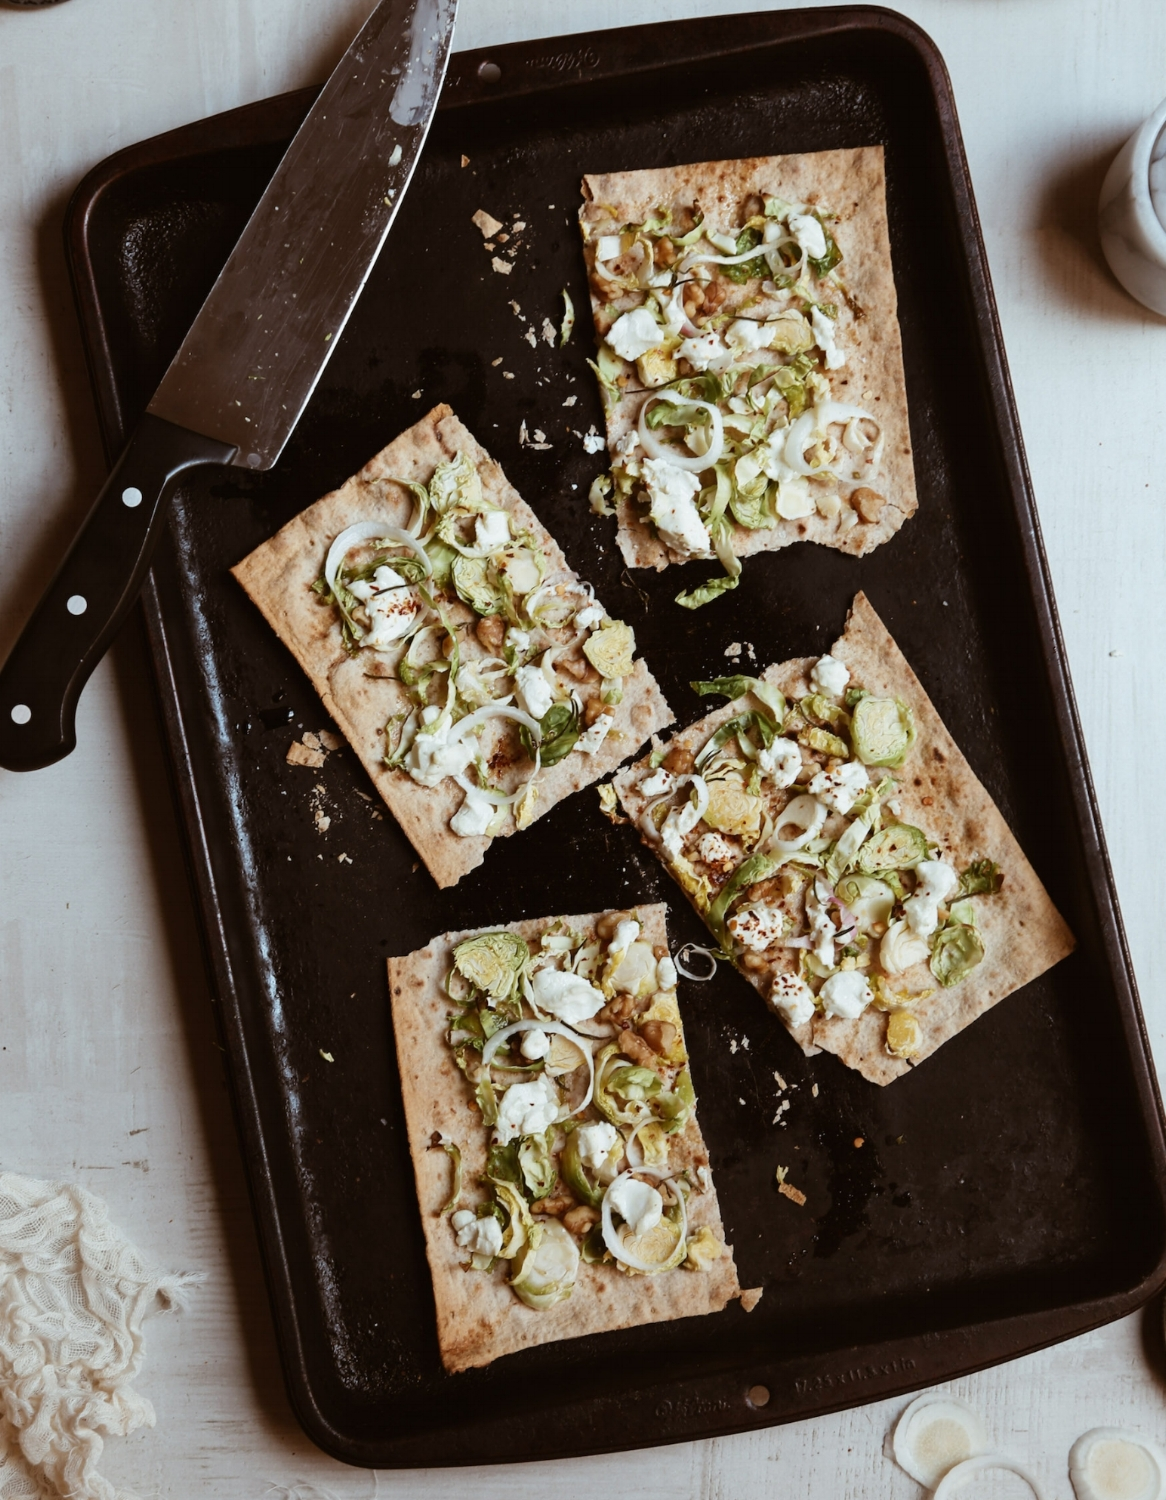 BRUSSELS SPROUTS FLATBREAD - serves 2